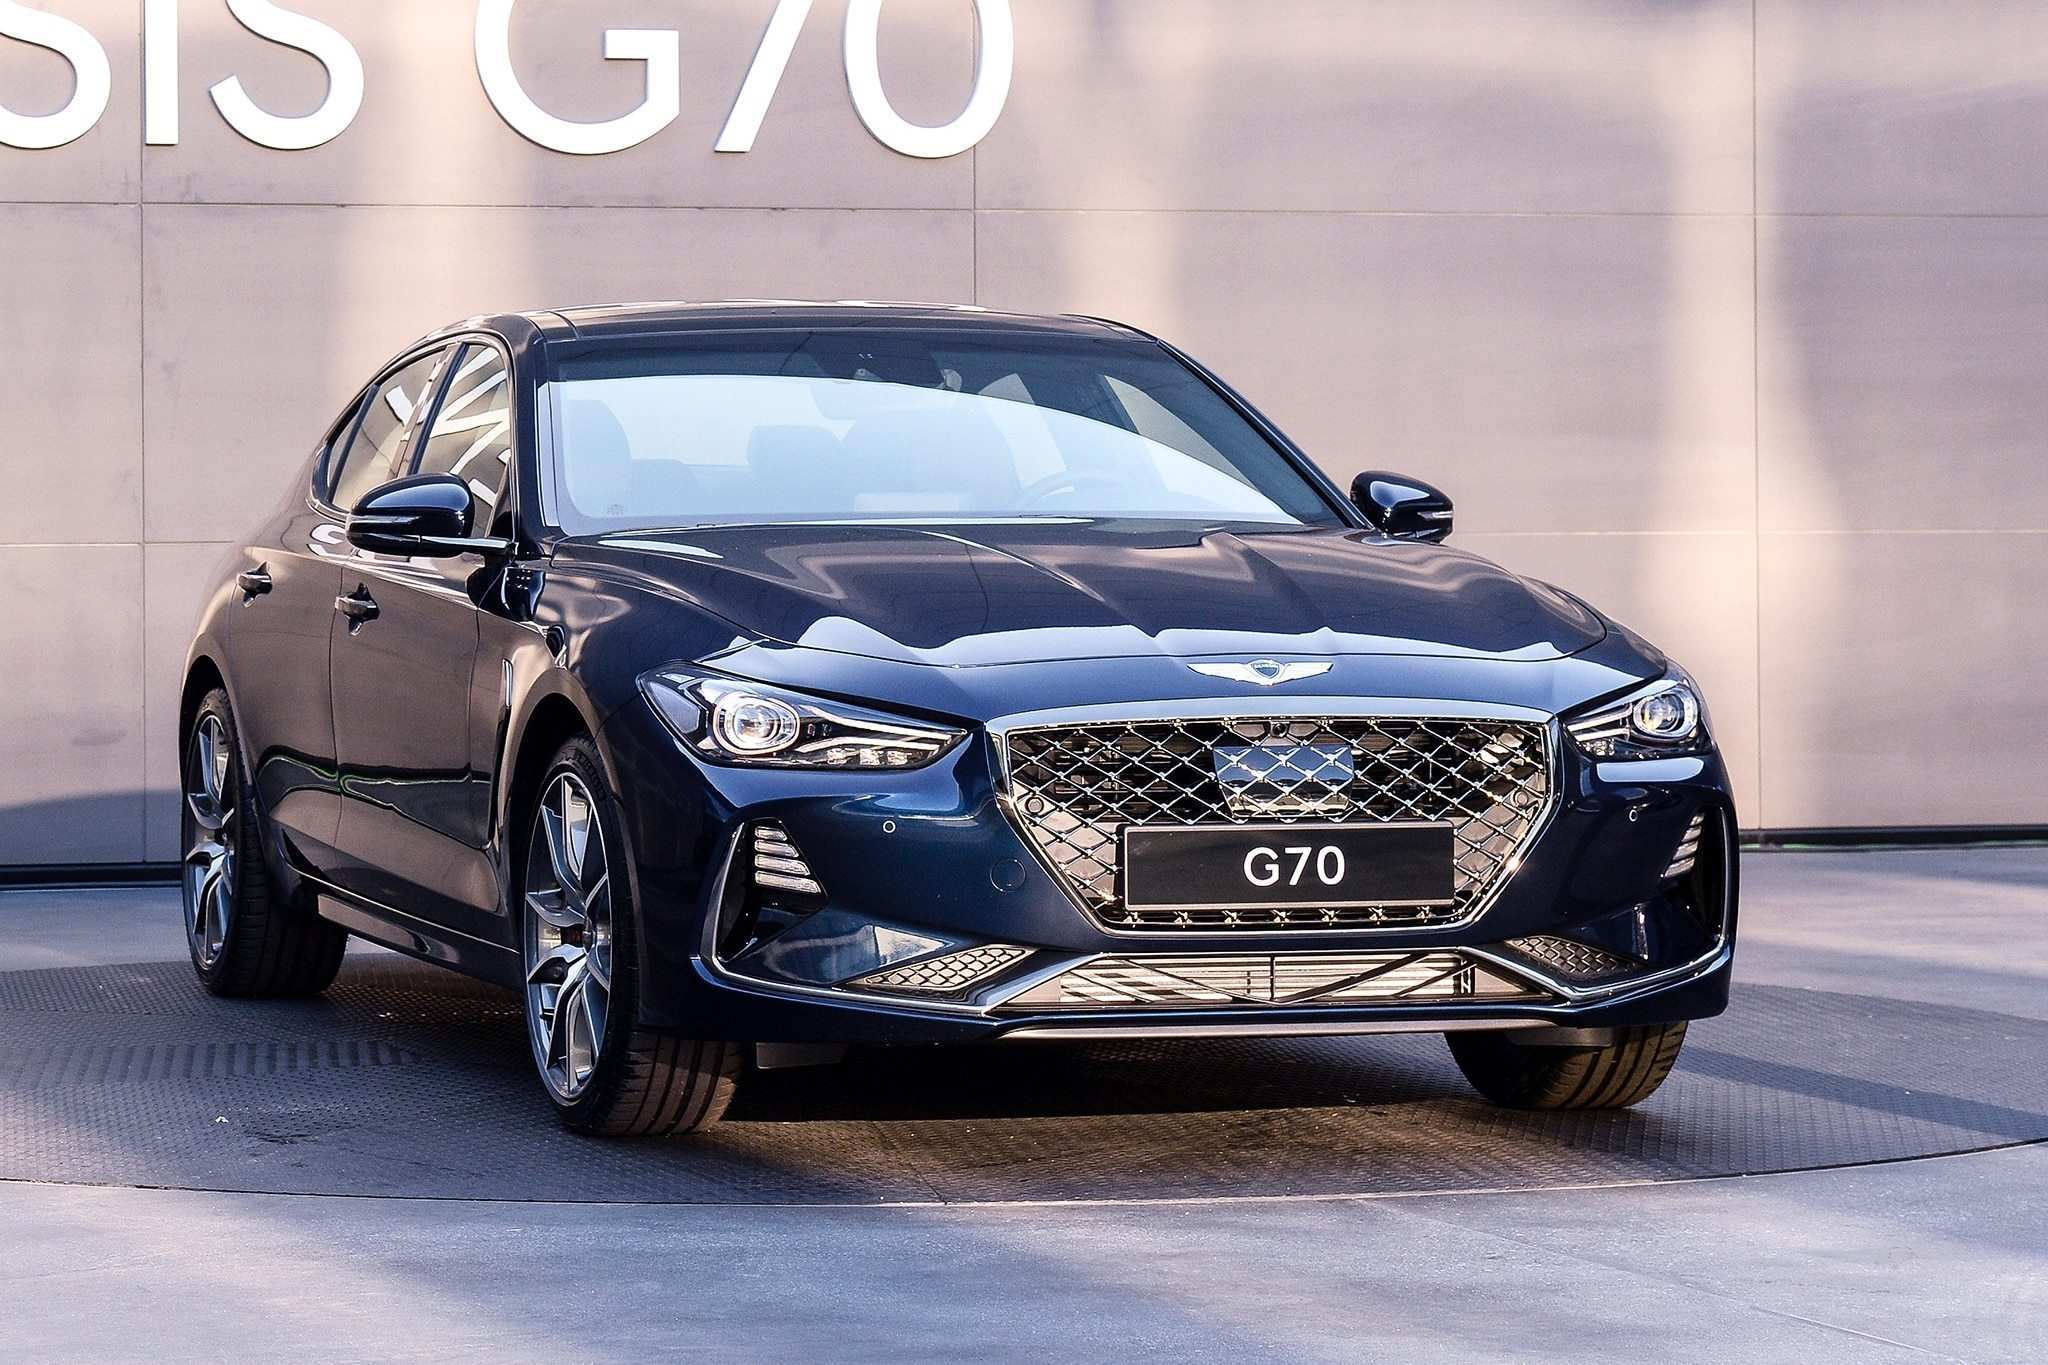 61 New 2019 Genesis Release Date Rumors with 2019 Genesis Release Date